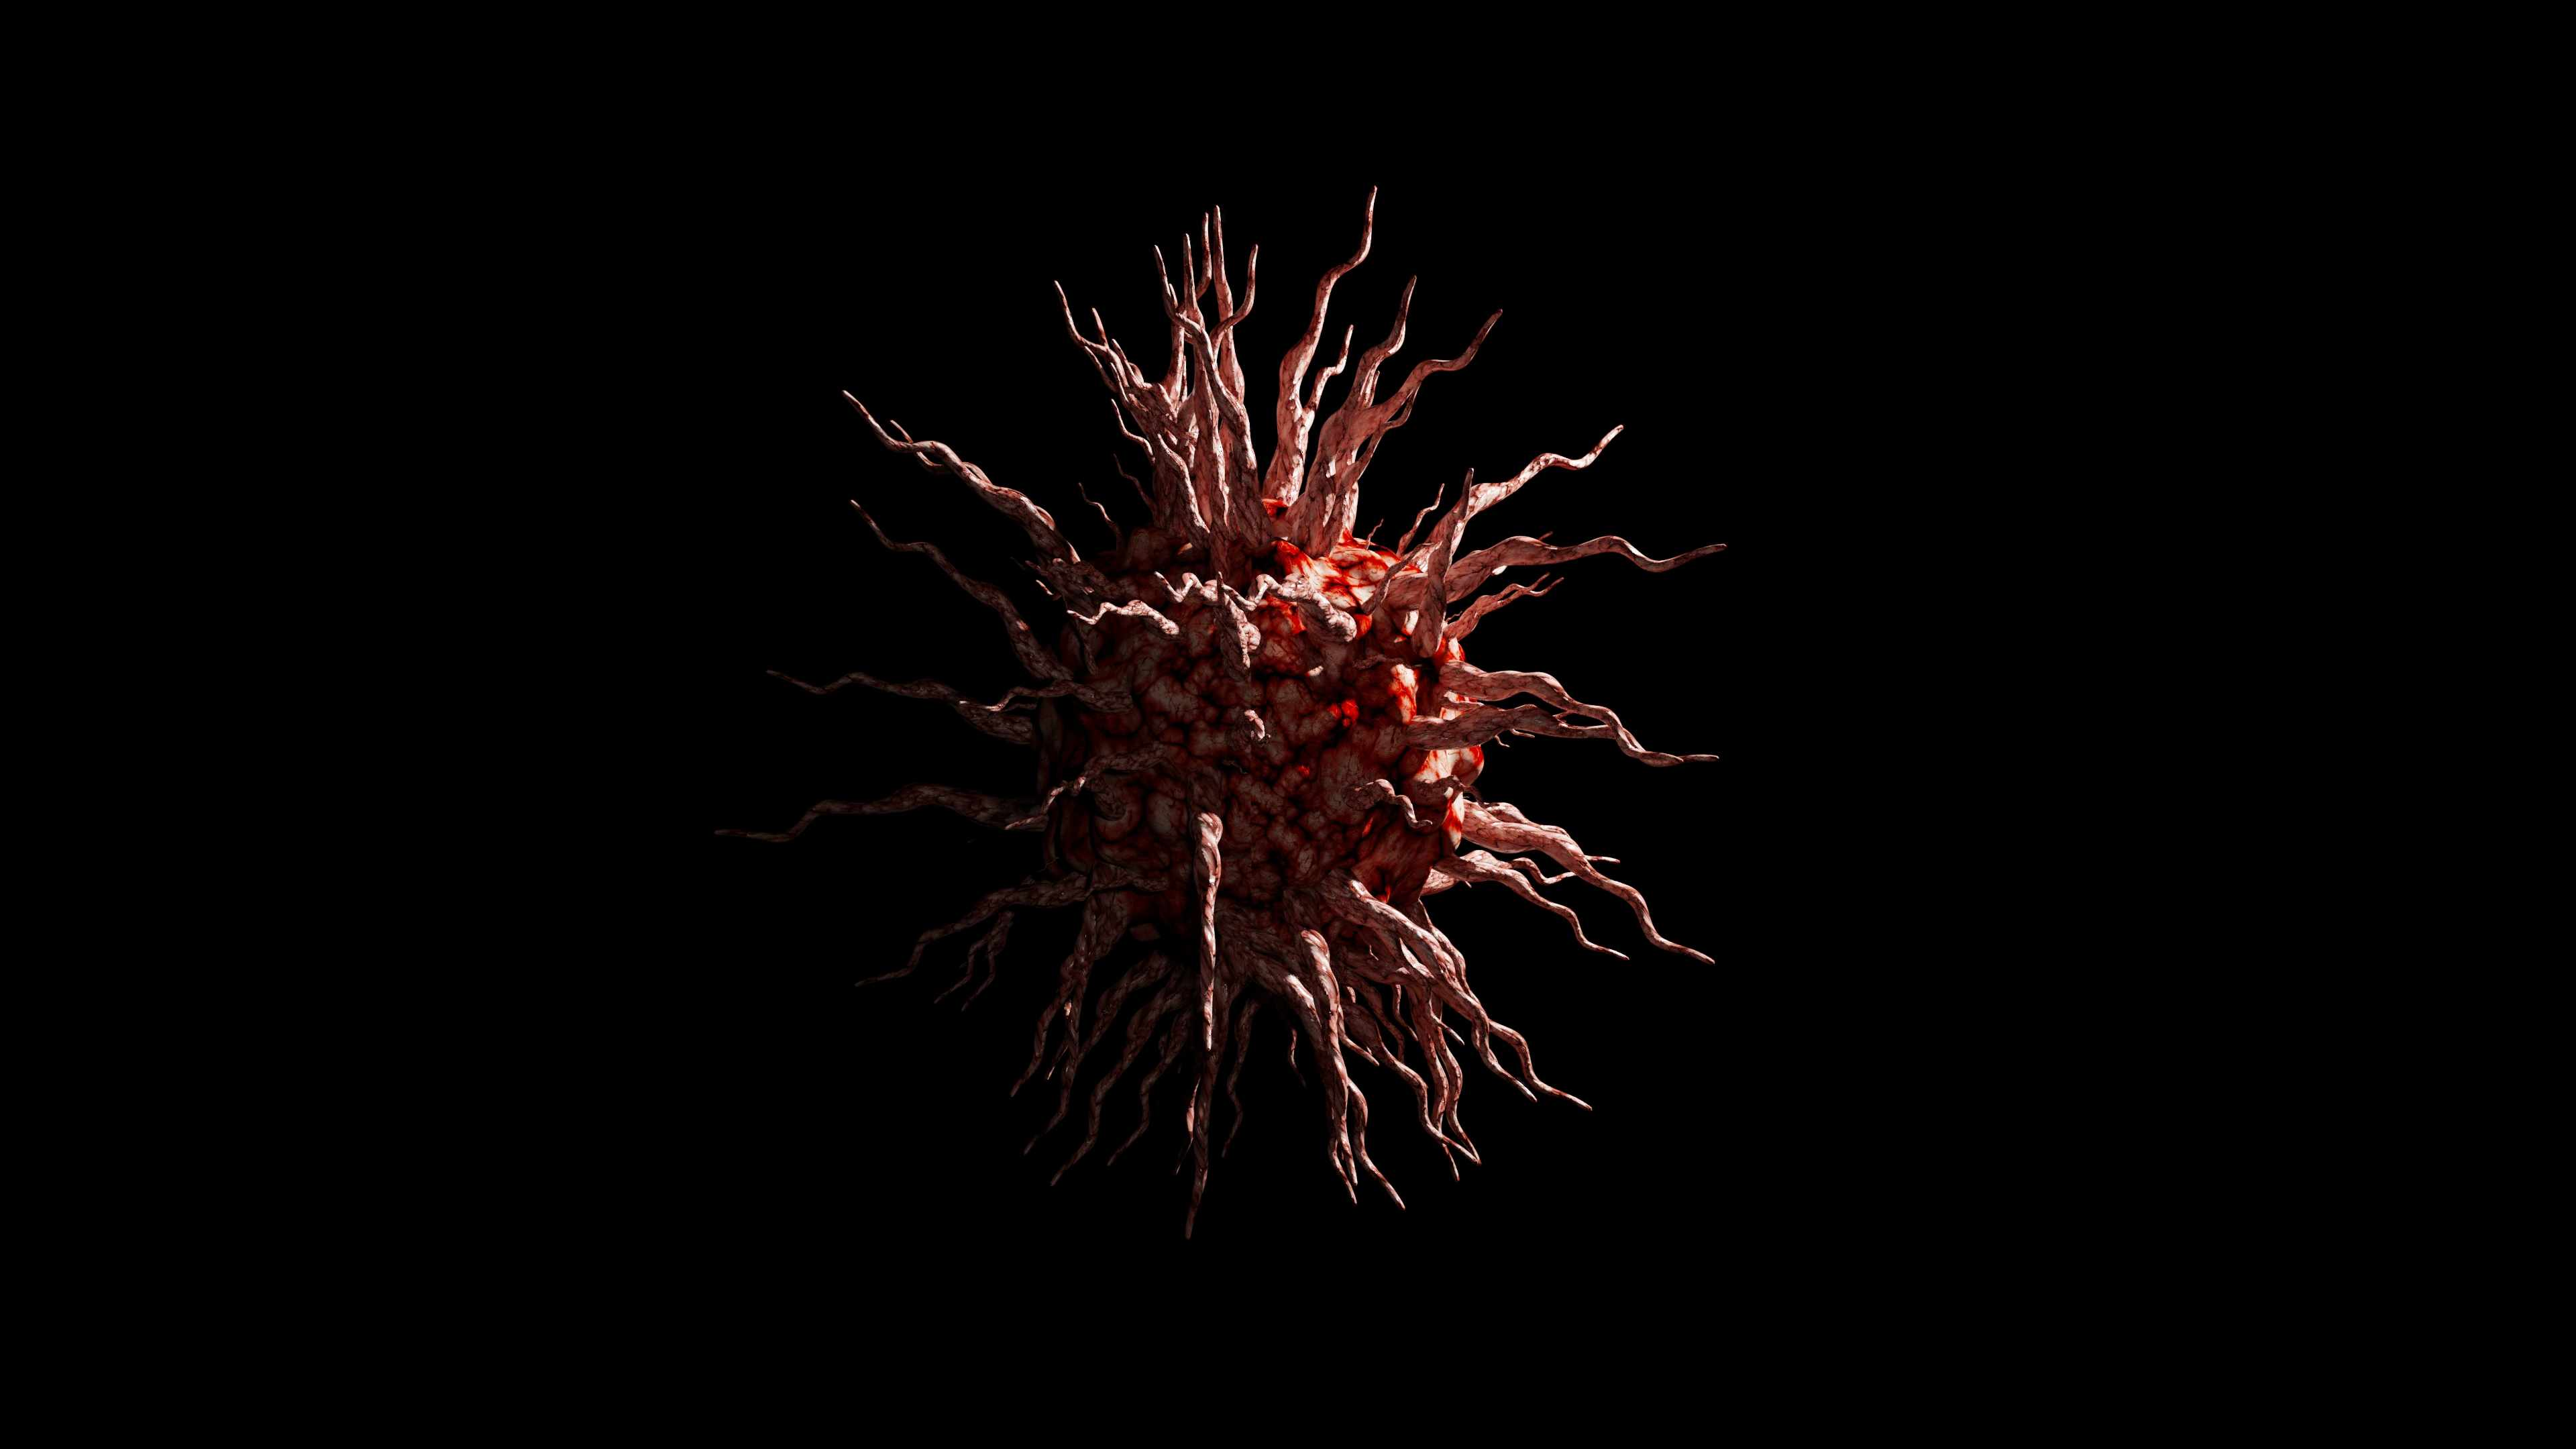 Cancer Cell disease types breast cancer research skin symptoms 3D rendering © Getty Images